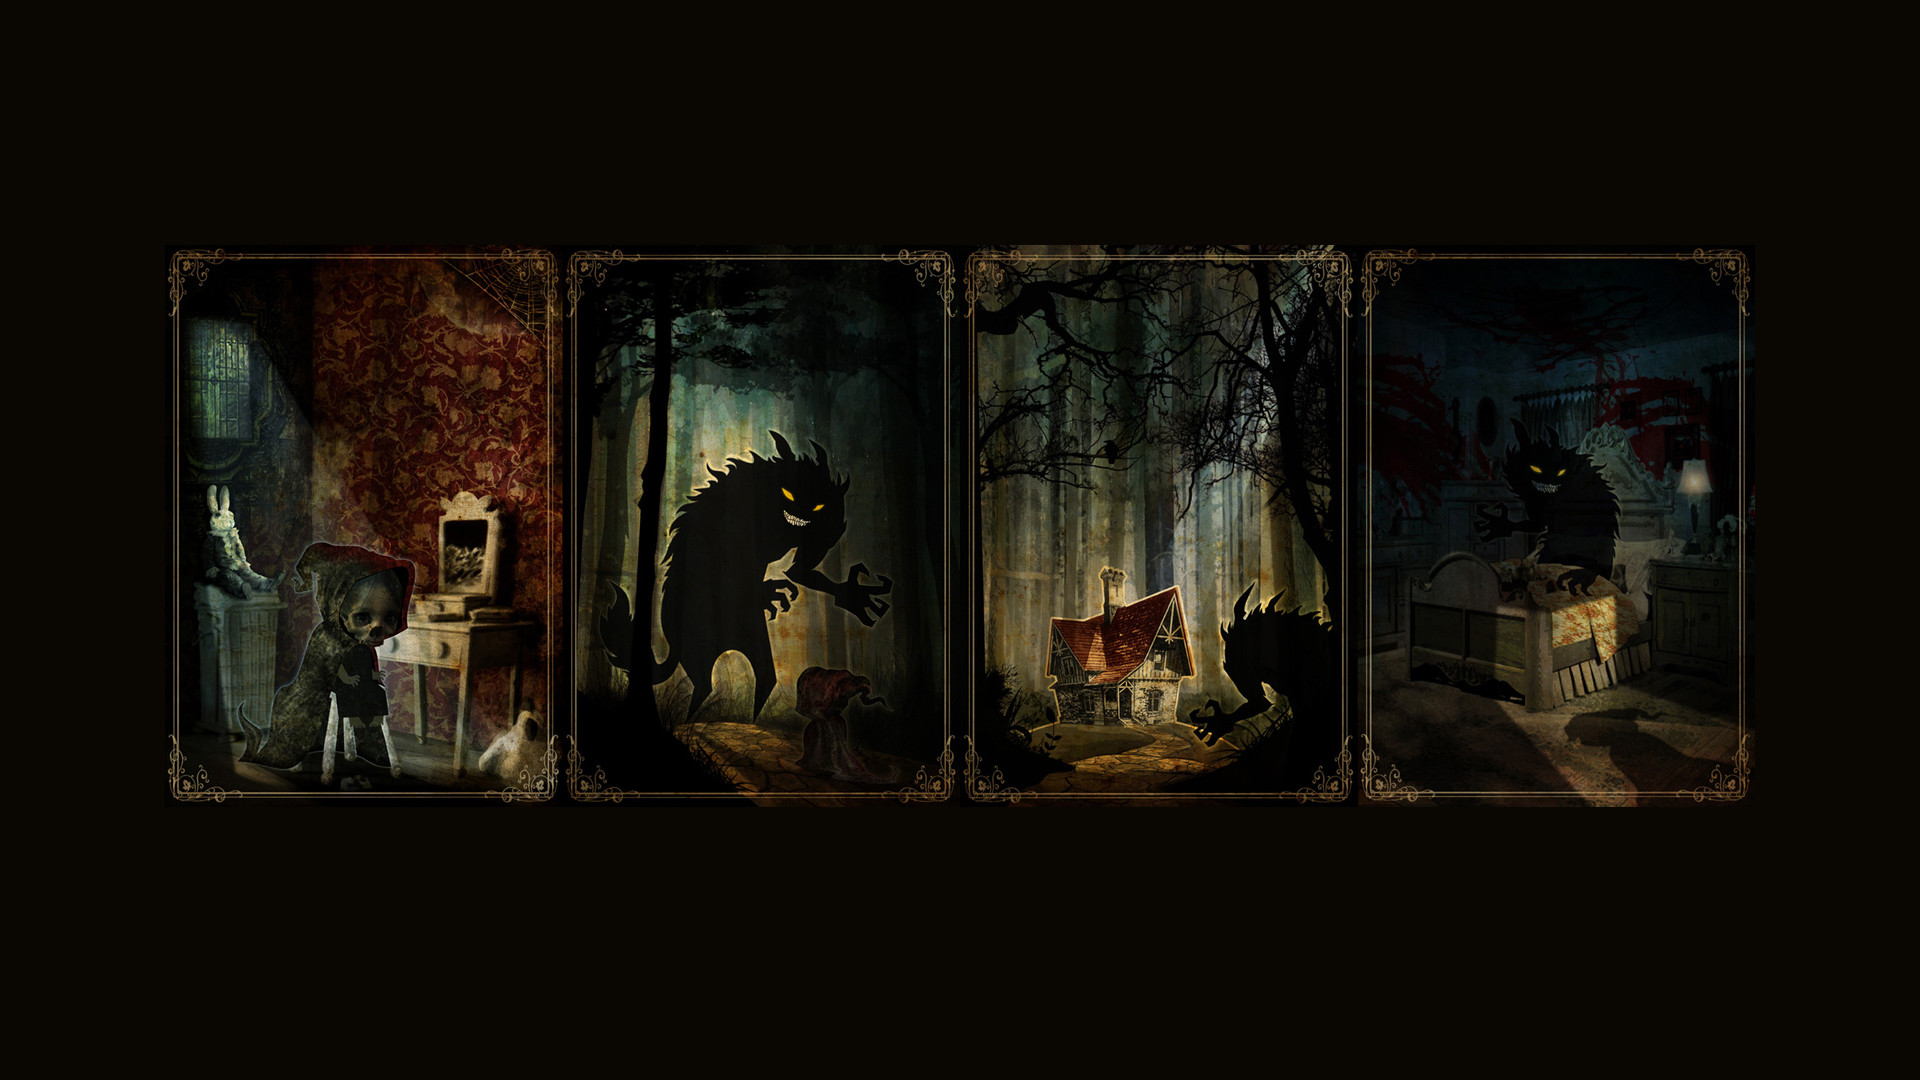 1920x1080 ... Top HD Wallpapers Collection of Little Red Riding Hood And The Wolf -   px, ...